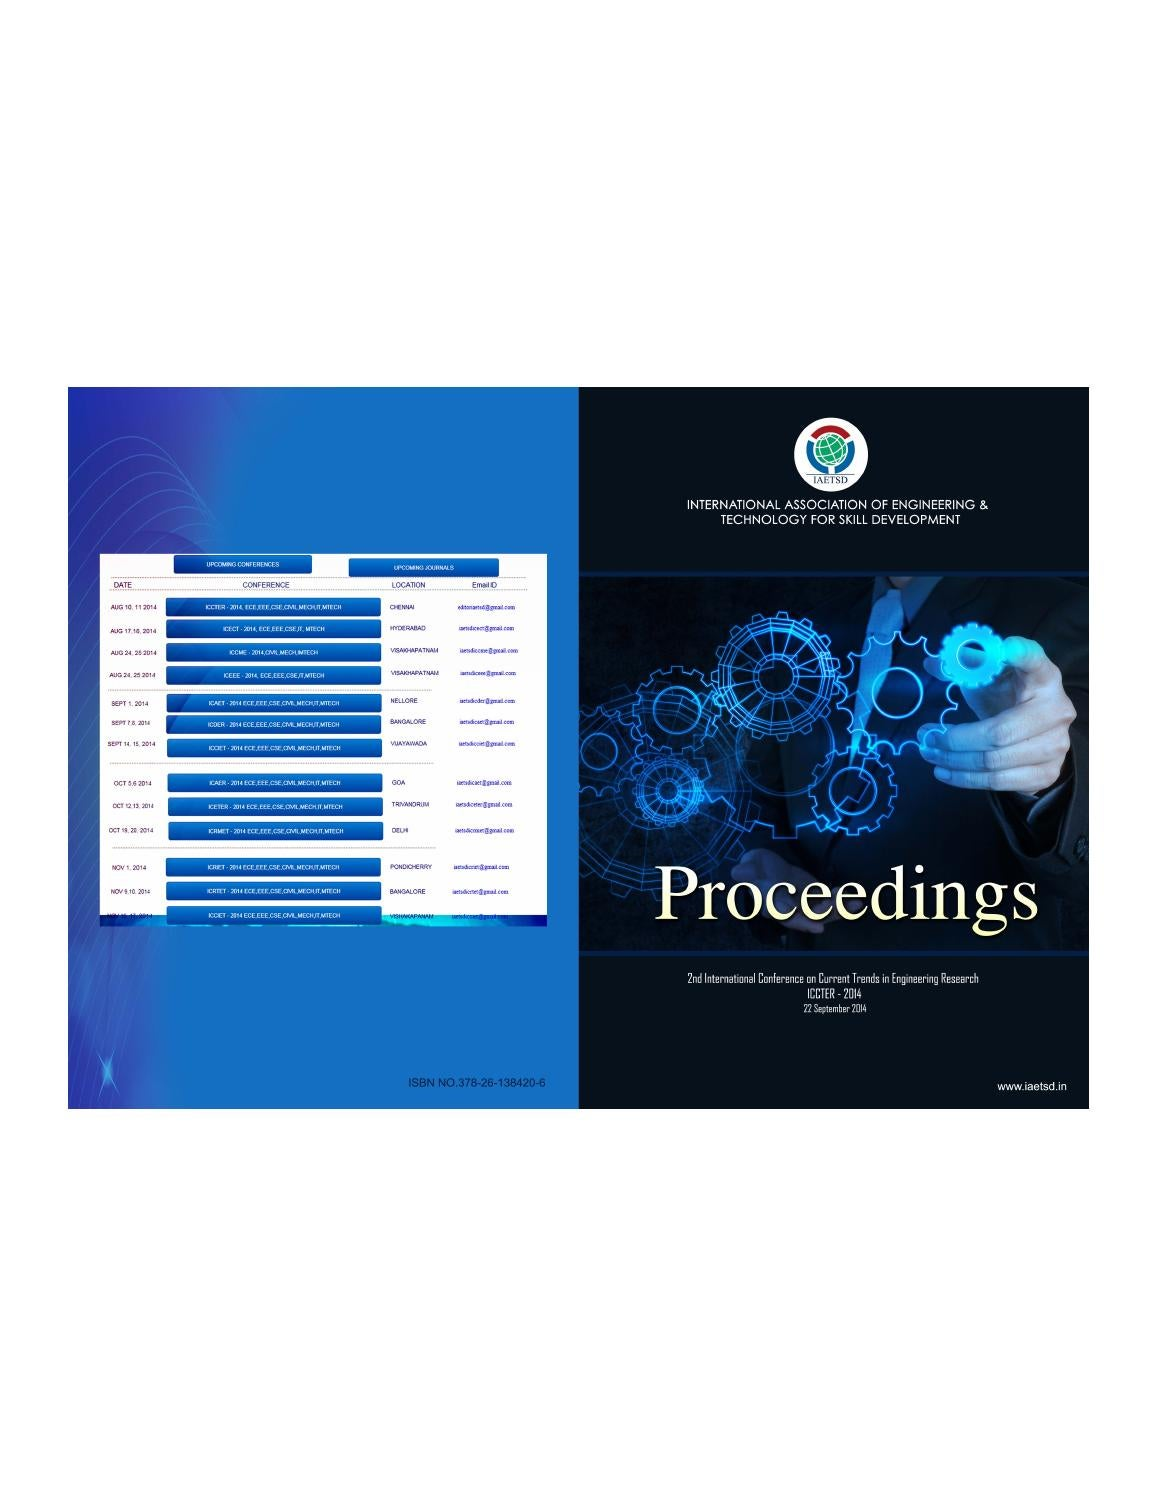 Iccter Proceedings By Iaetsd Issuu Circuits Gt Pic16f877 Up Down Counter Code And Proteus Simulation